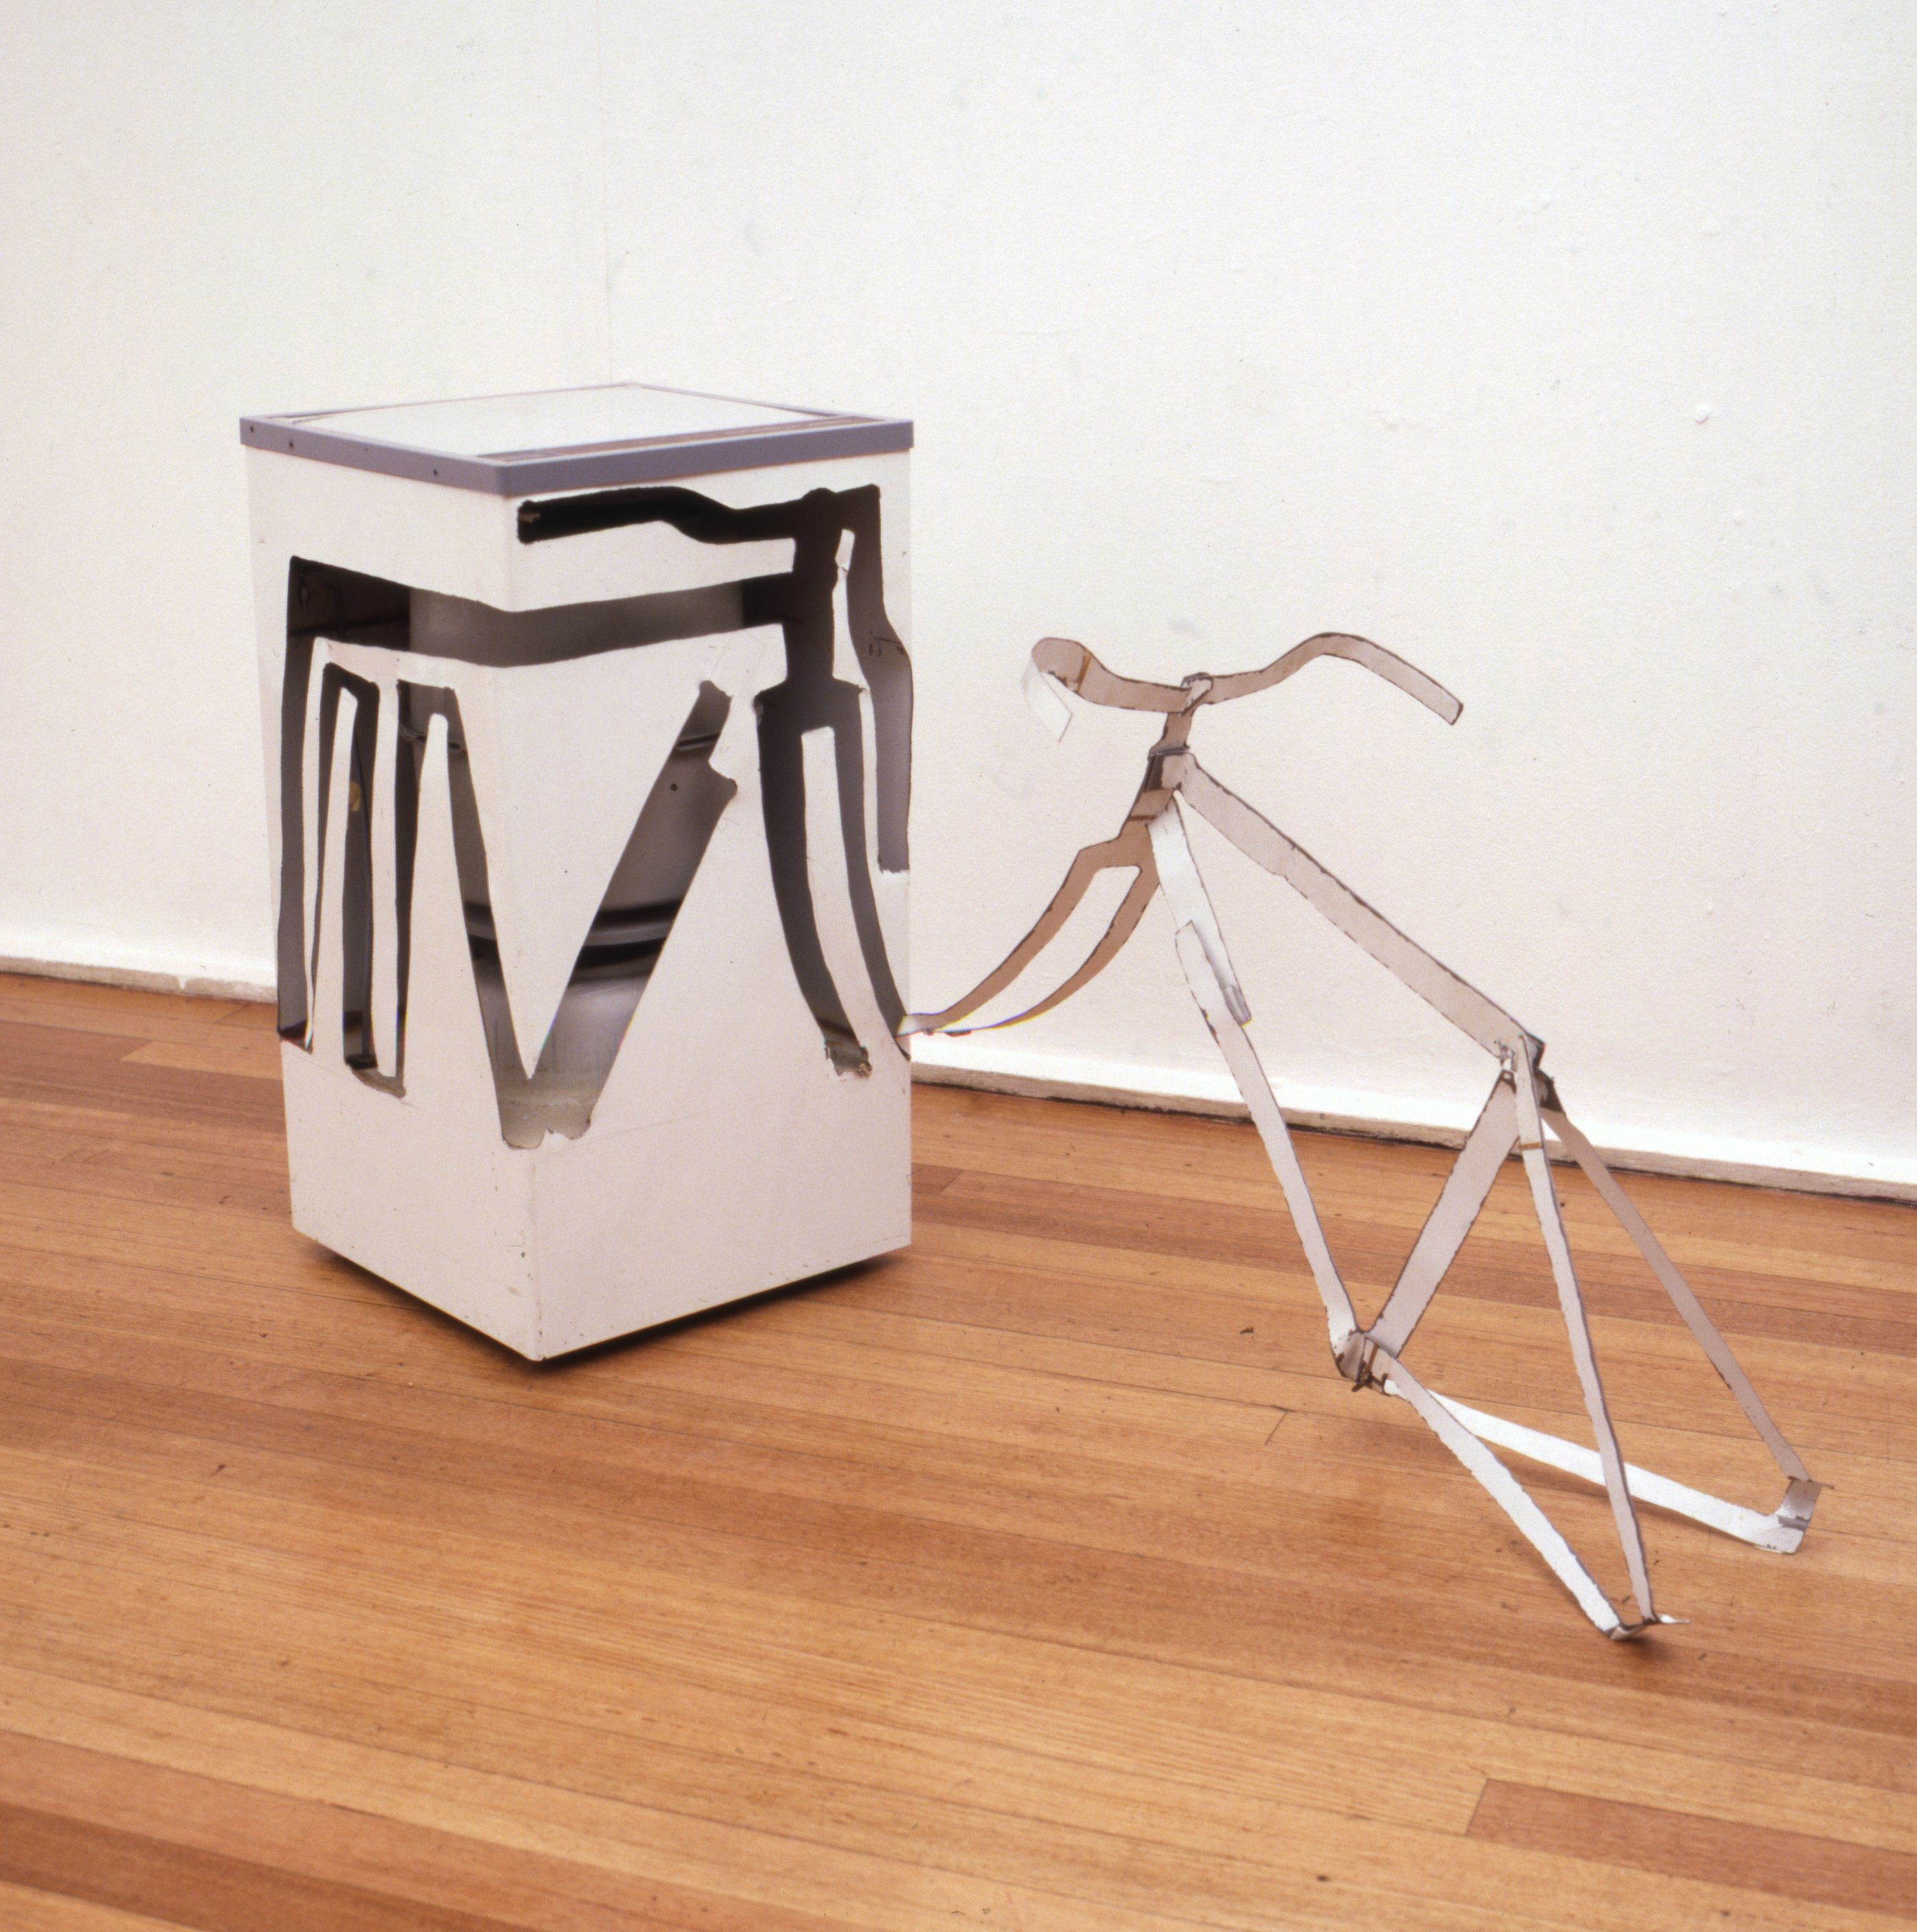 'Spin Dryer with Bicycle Frame Including Handlebars', 1981